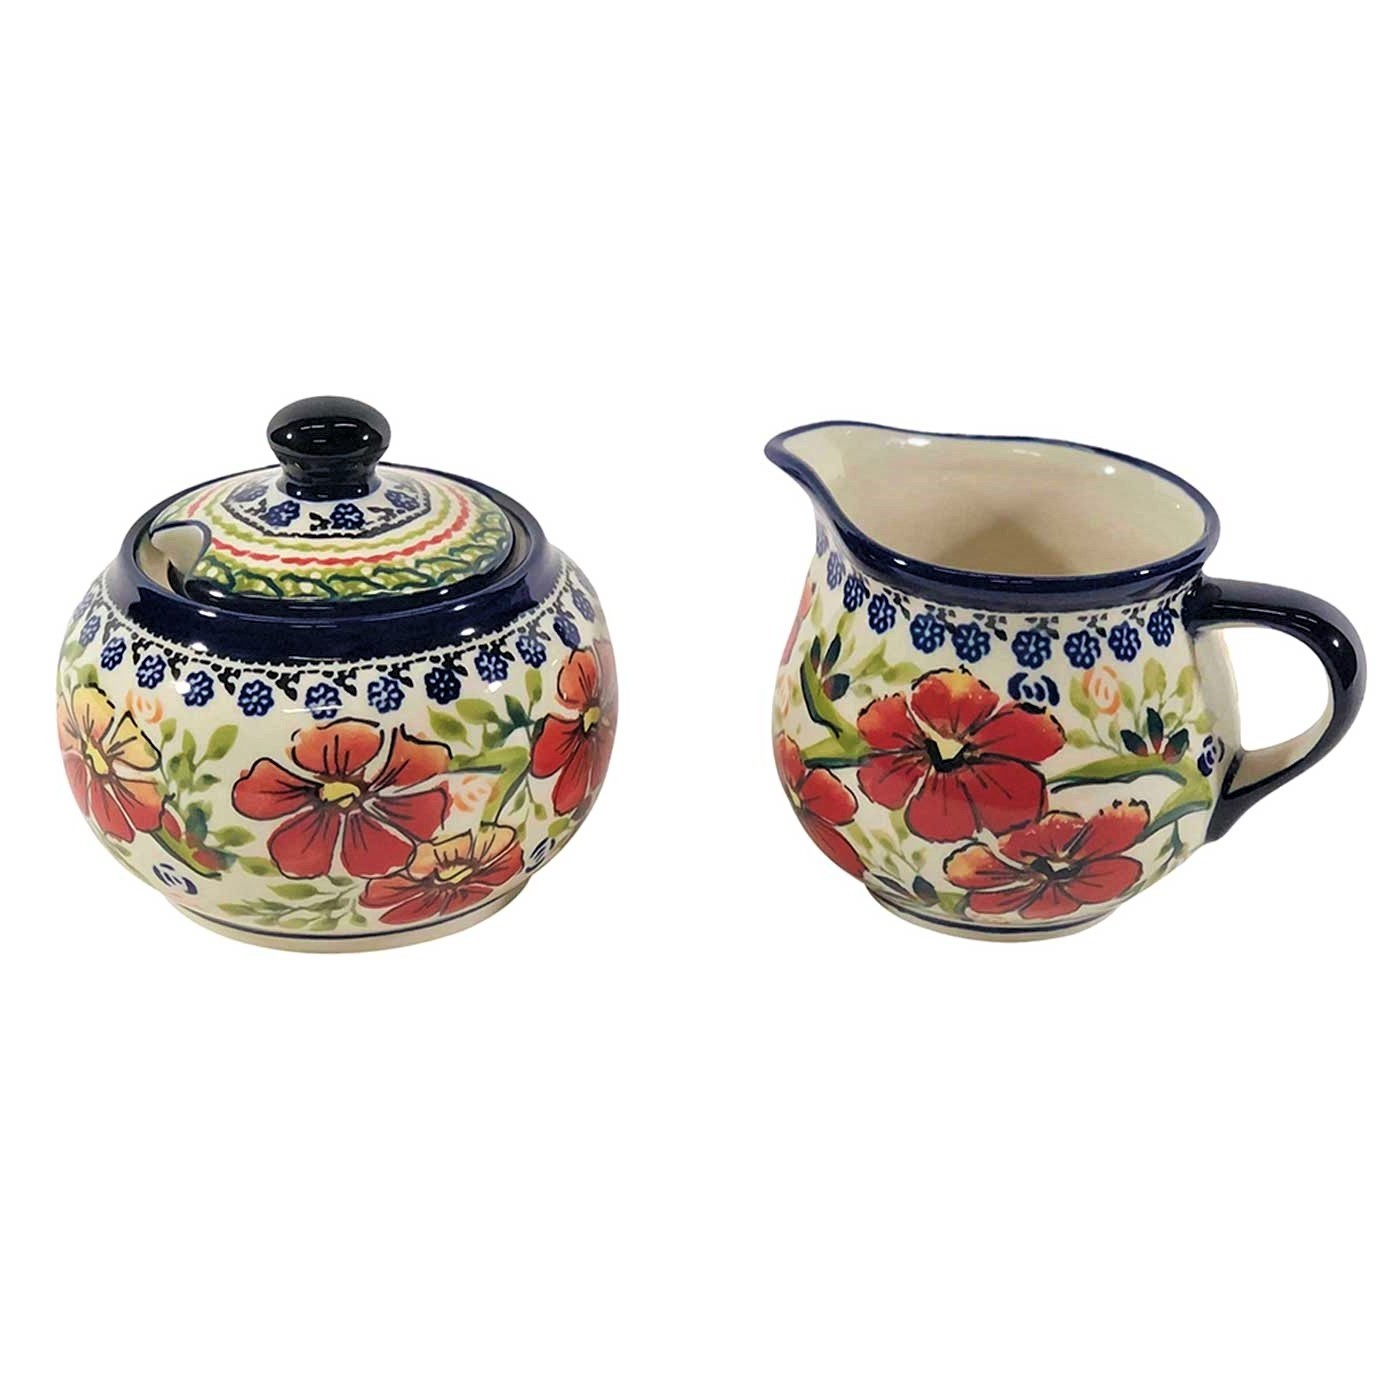 Pottery Avenue Stackable Cream and Sugar Set - 694-945-252EX Love Blossoms